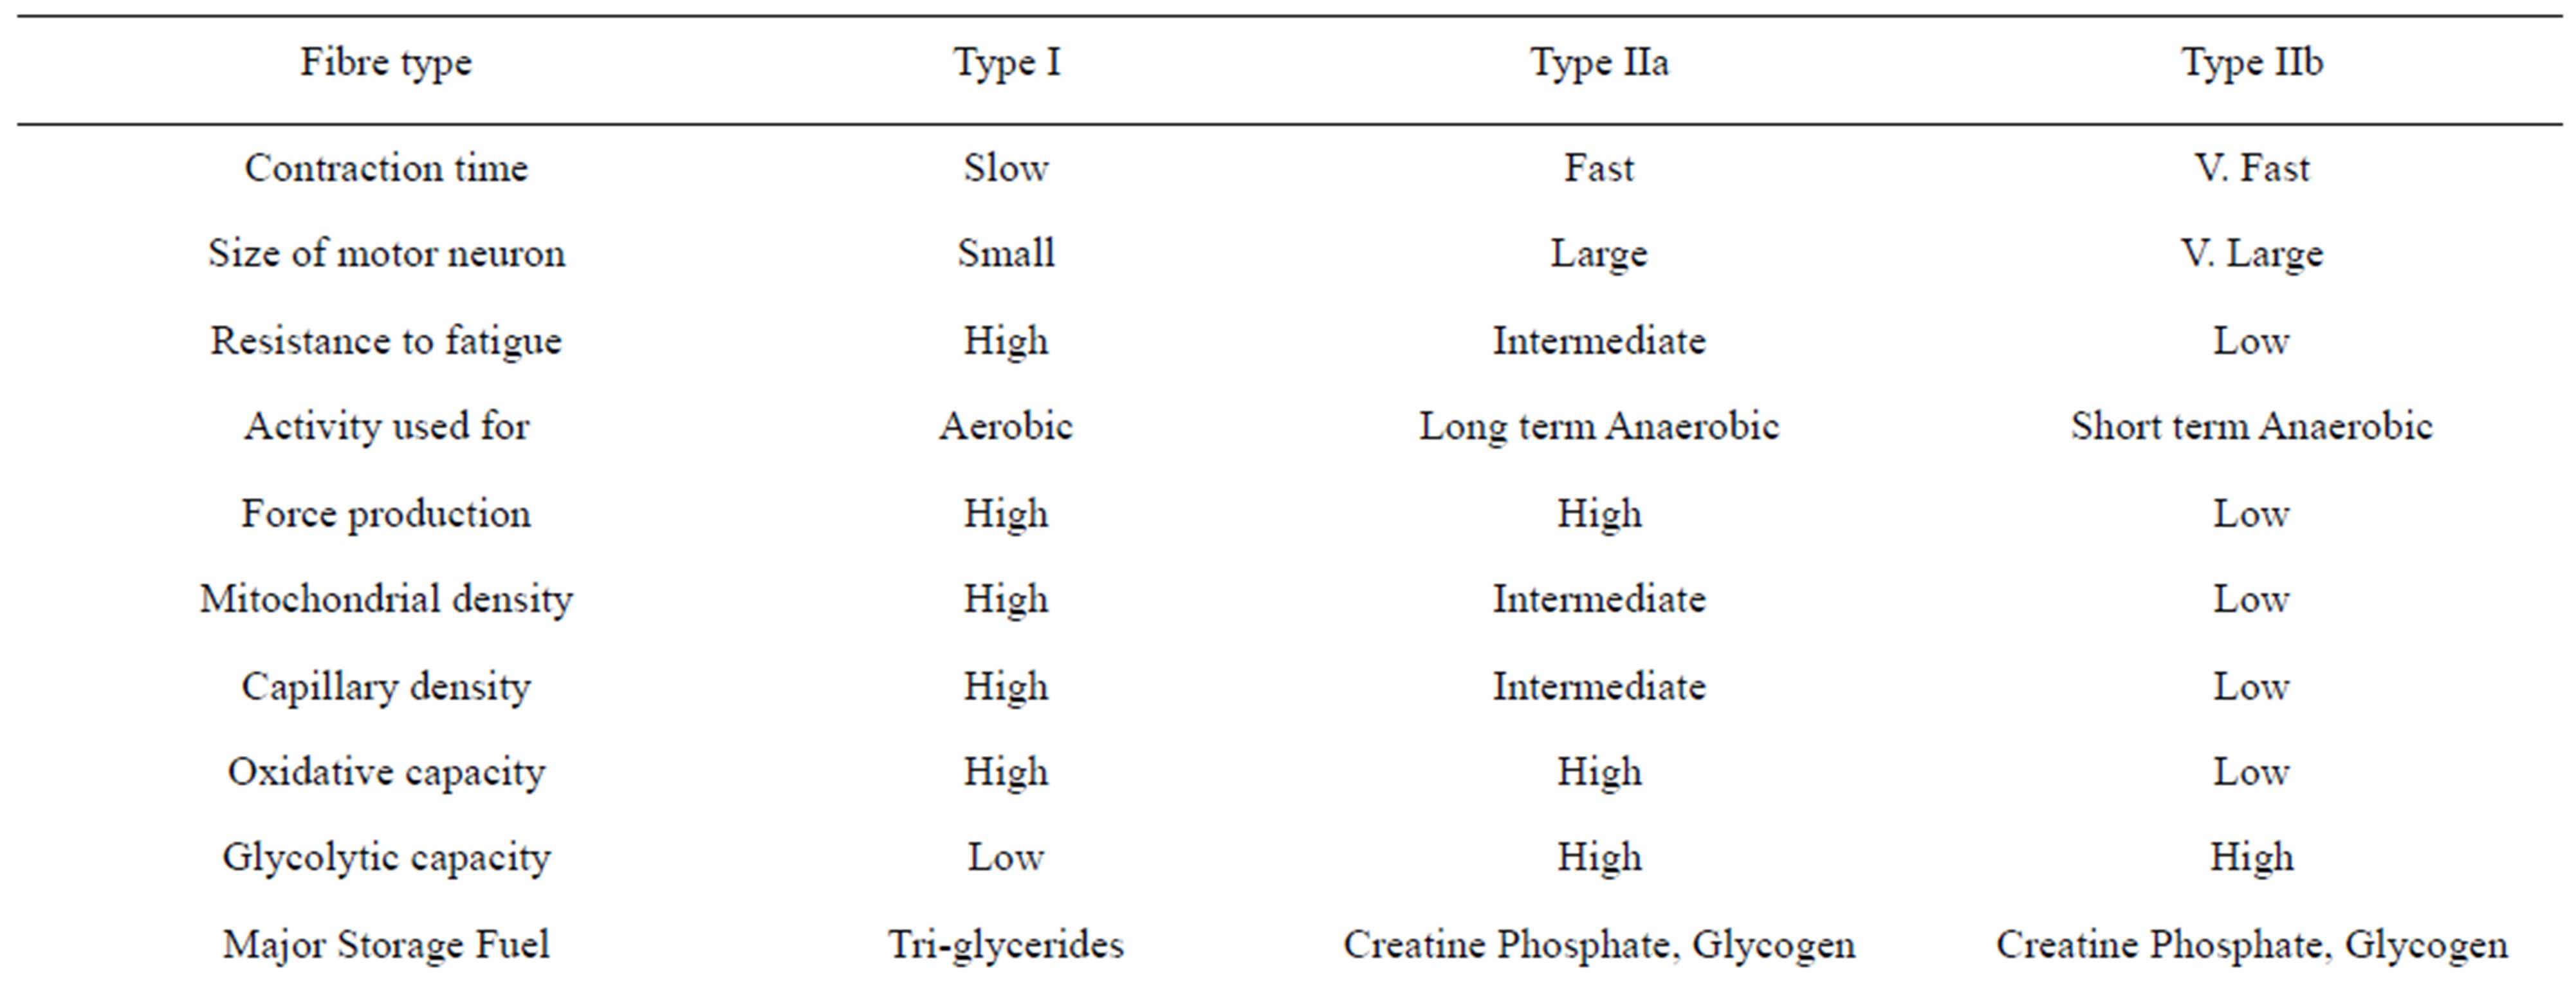 Muscle fiber types chart images for Different types of tables in html